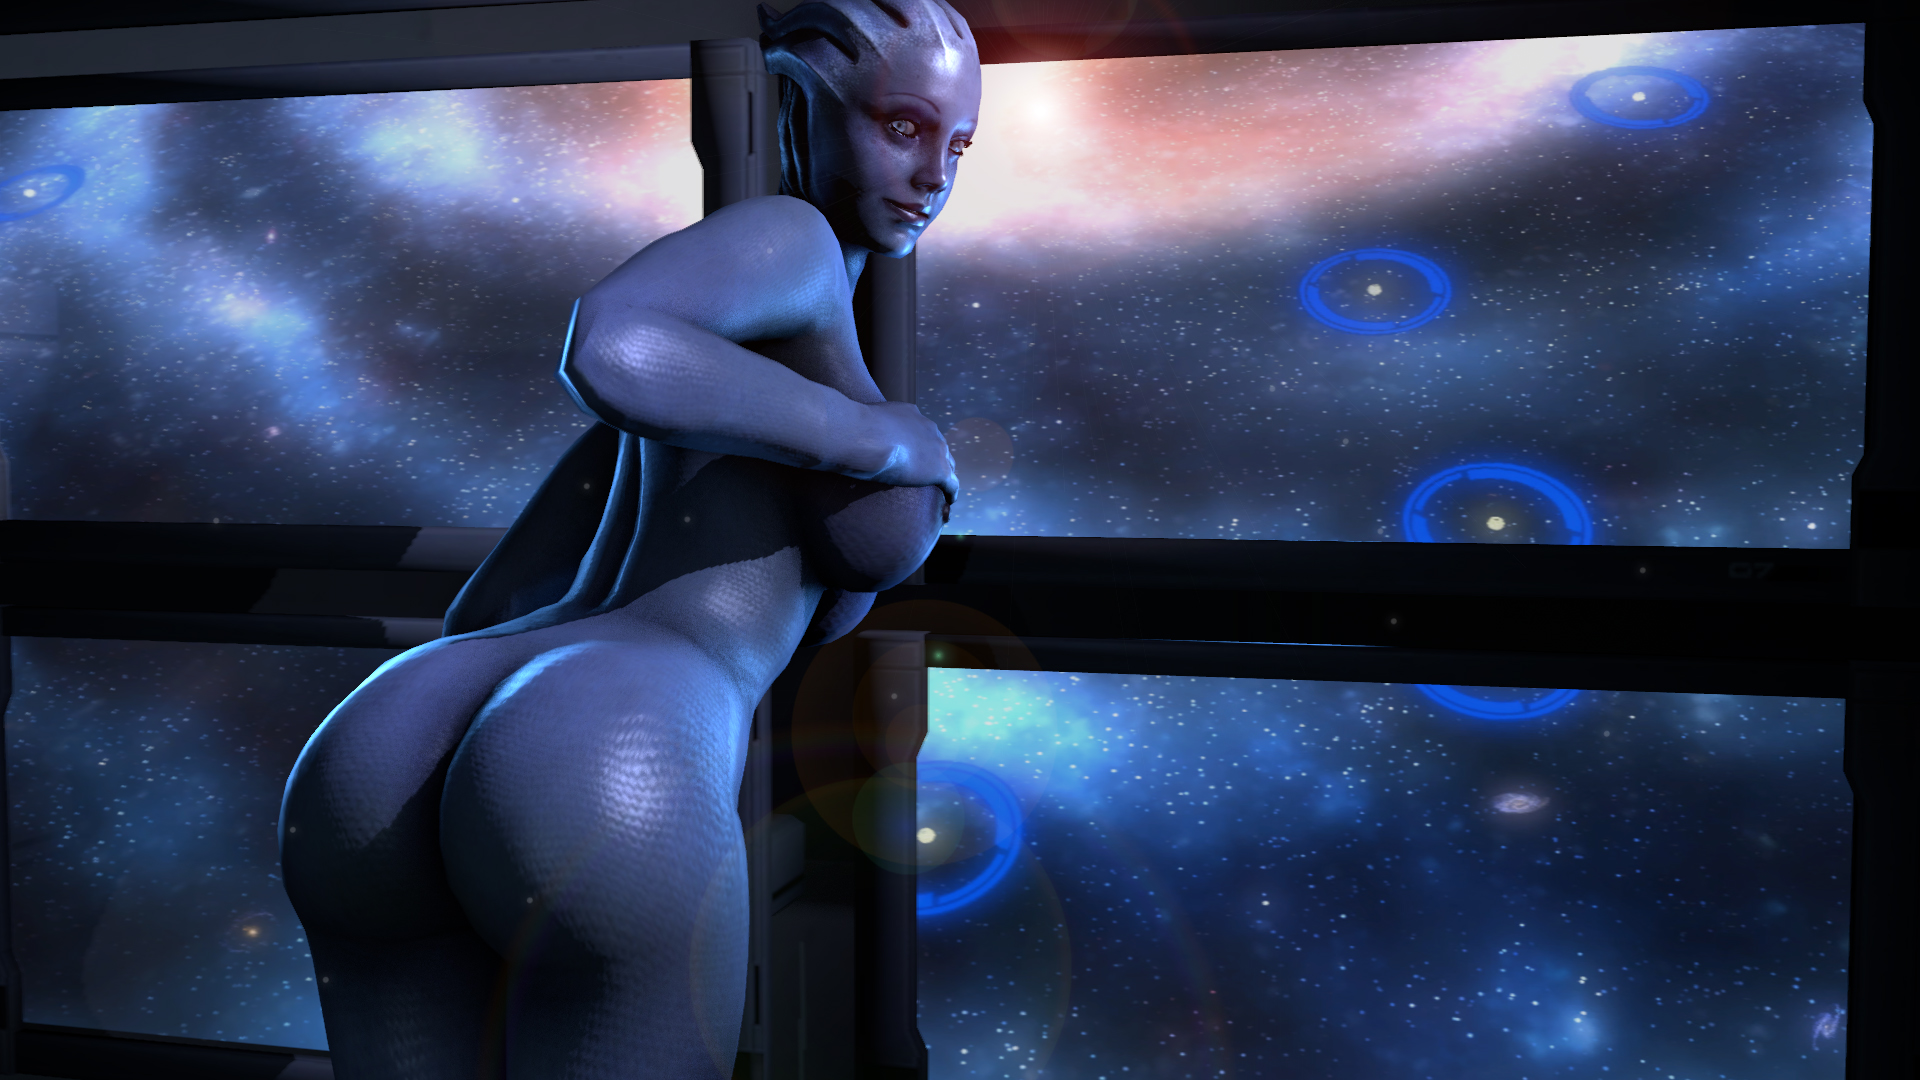 Mass effect liara porn videos fucks pictures